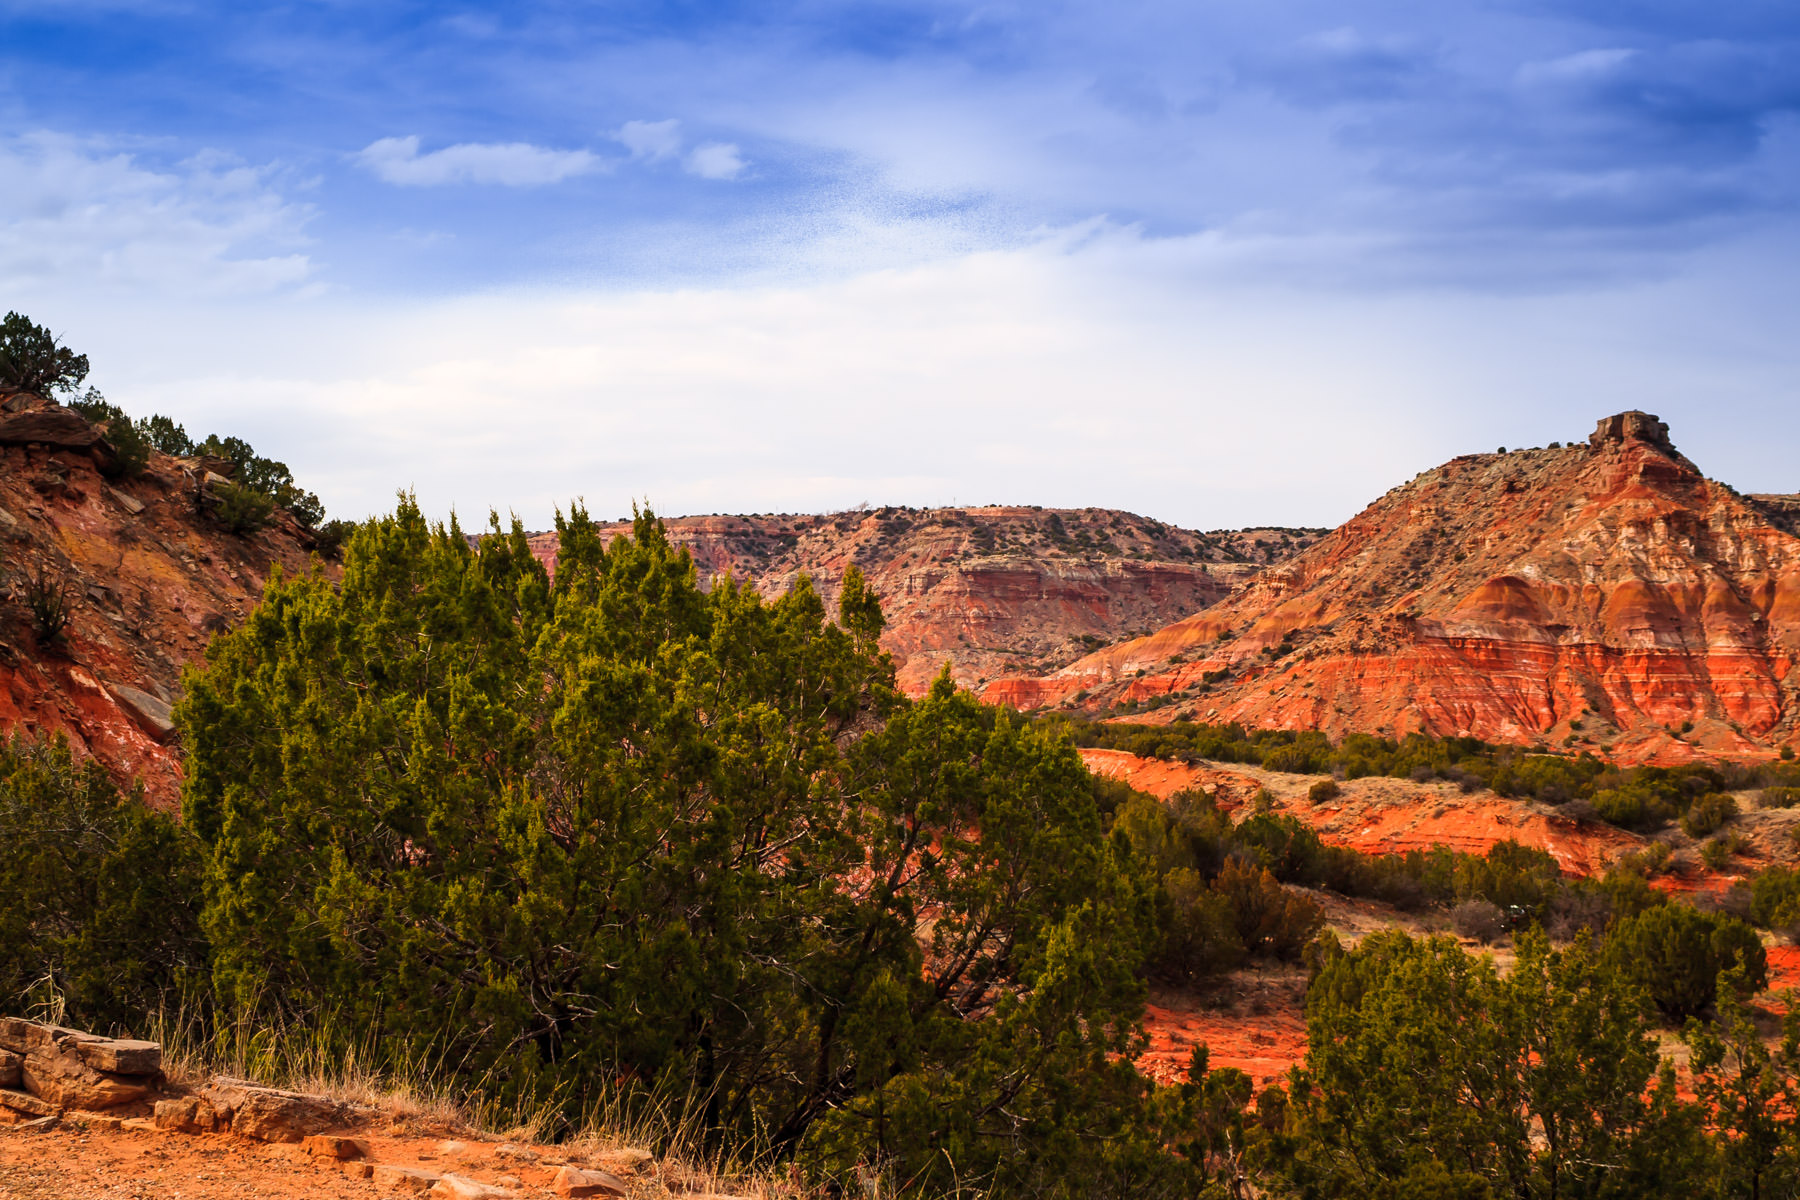 The rugged landscape of Palo Duro Canyon, Texas.